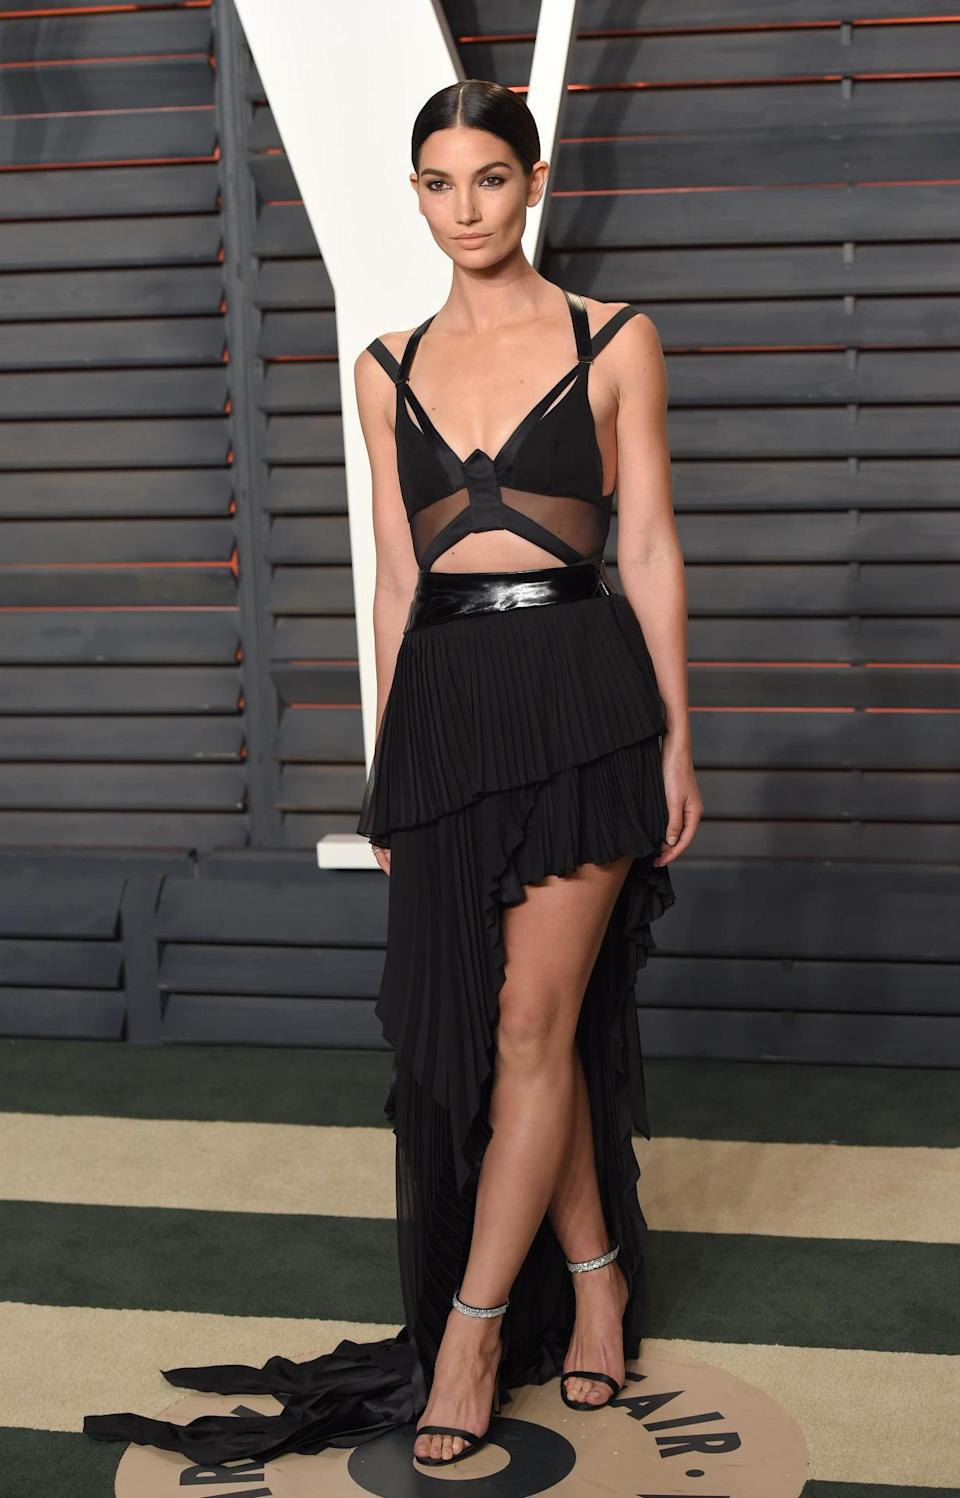 <p>She's part of Taylor Swift's 'squad' and has landed campaigns with the likes of Michael Kors and Carolina Herrera. <i>[Photo: PA]</i></p>